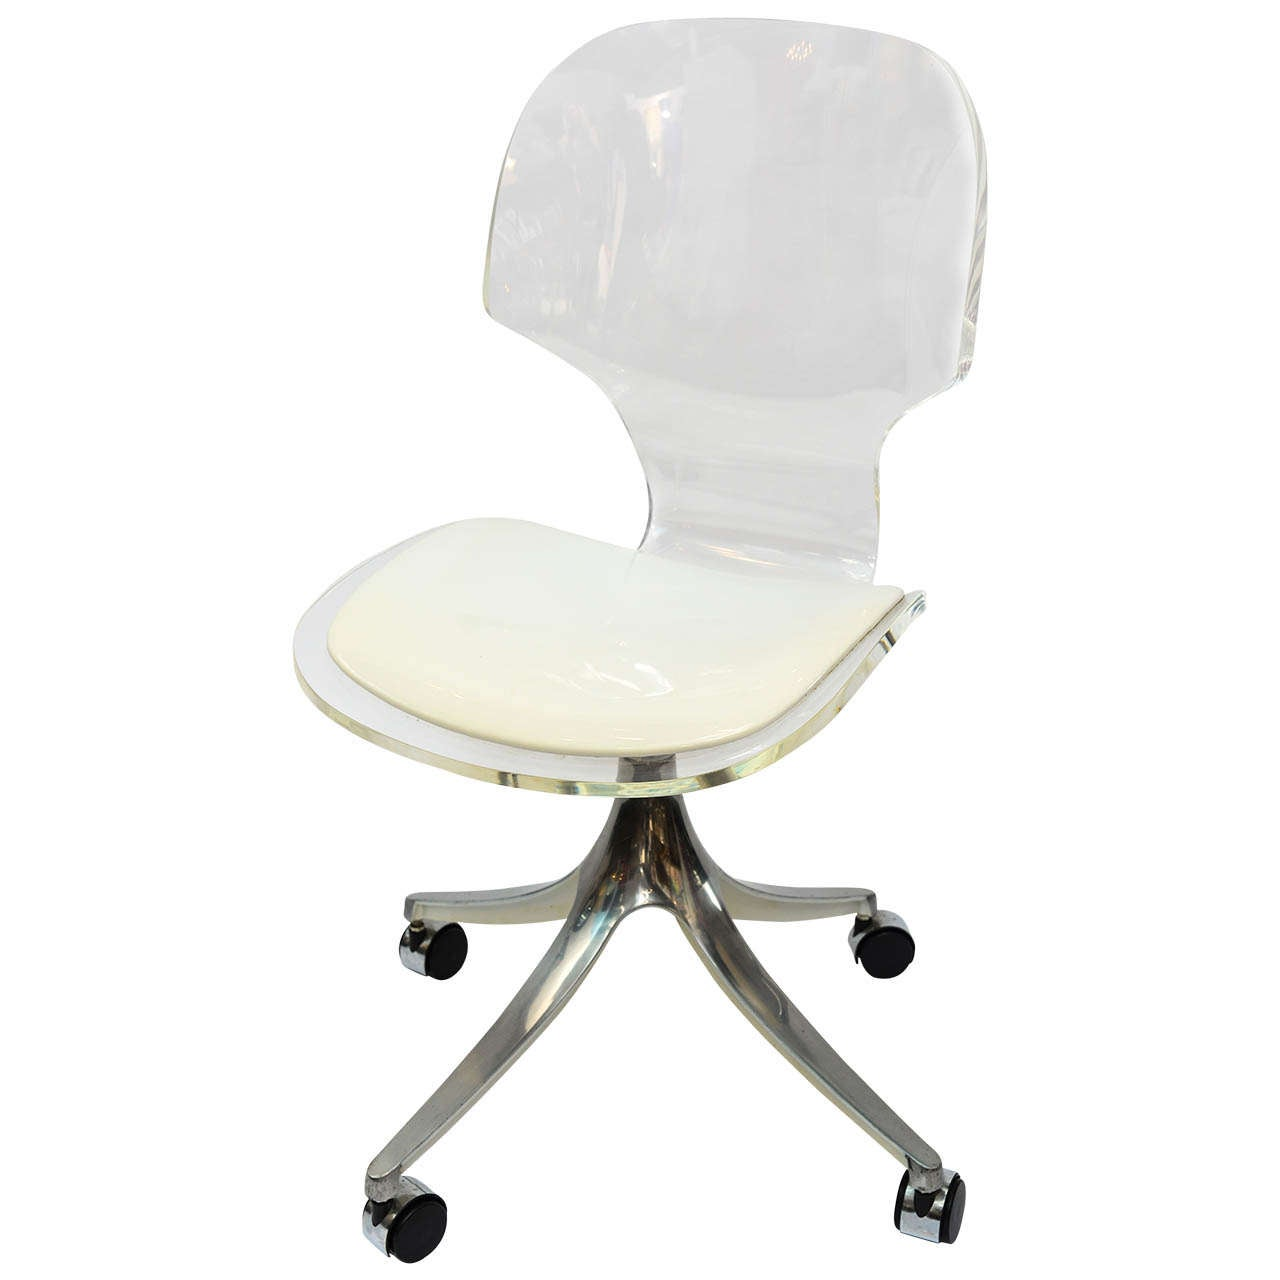 office chair steel base with wheels swivel moon stunning 1960 s lucite desk on chrome at 1stdibs for sale